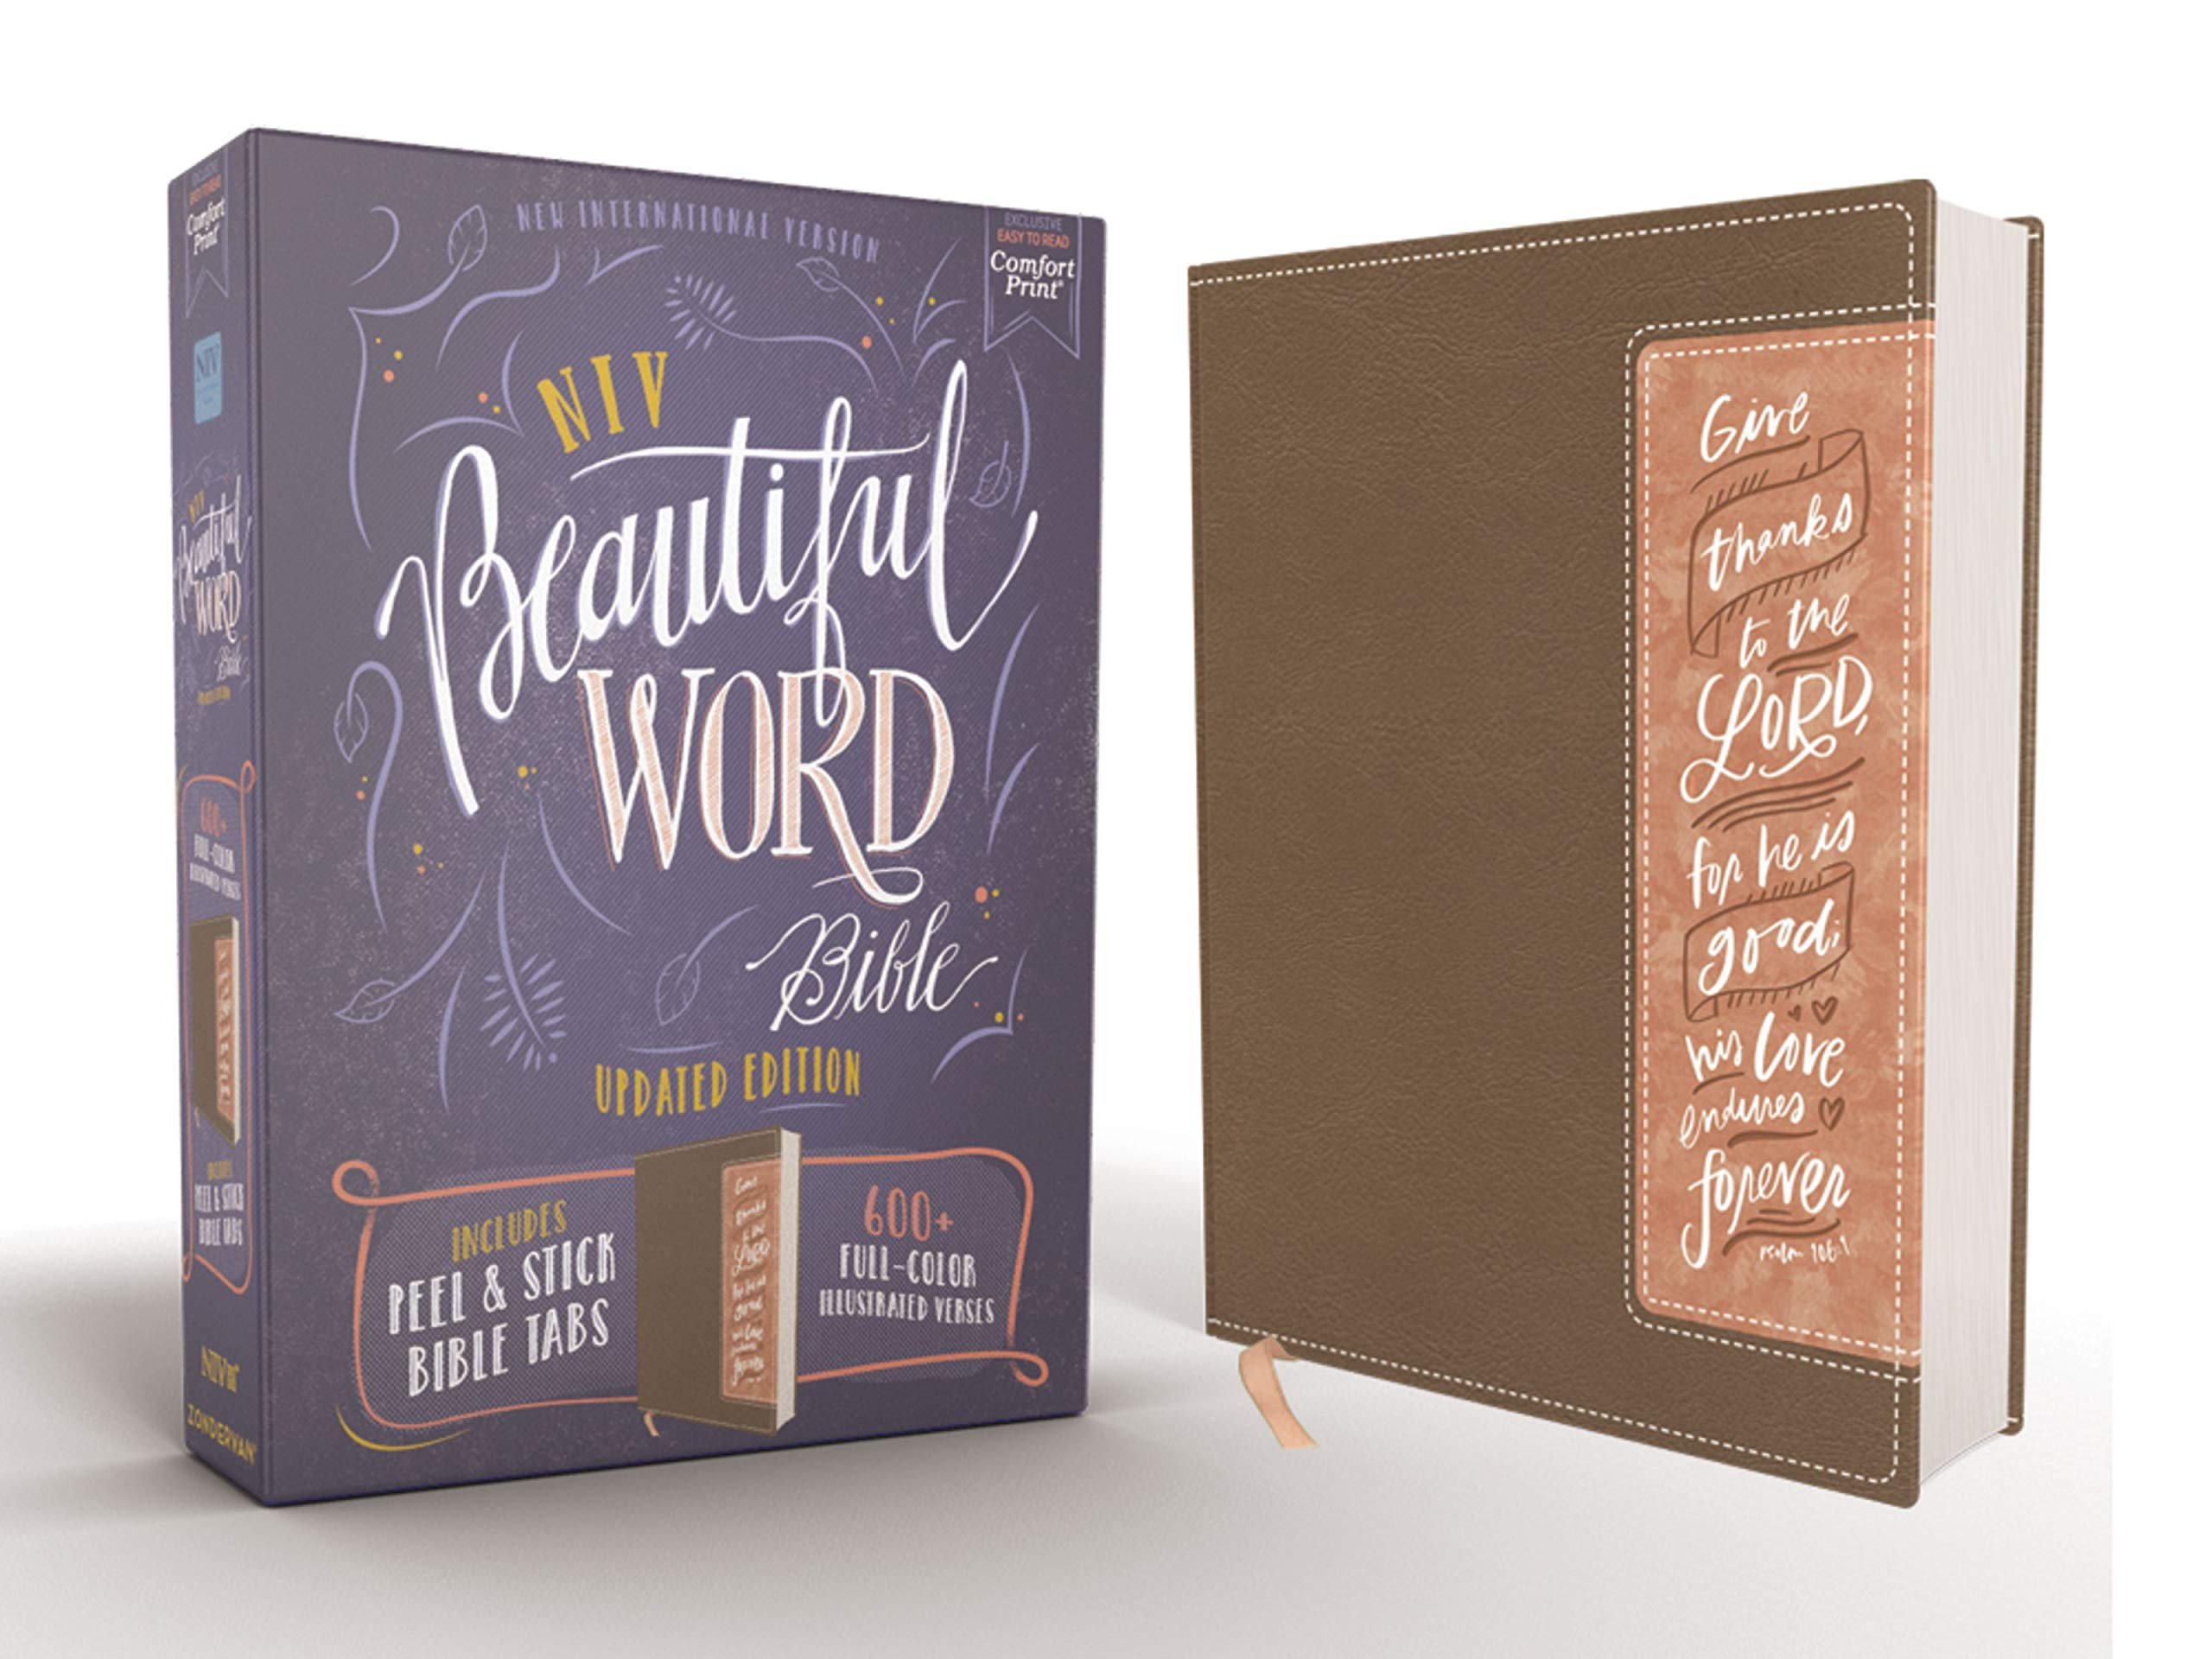 NIV, Beautiful Word Bible, Updated Edition, Peel/Stick Bible Tabs, Leathersoft, Brown/Pink, Red Letter, Comfort Print: 600+ Full-Color Illustrated Verses by HarperCollins Christian Pub.